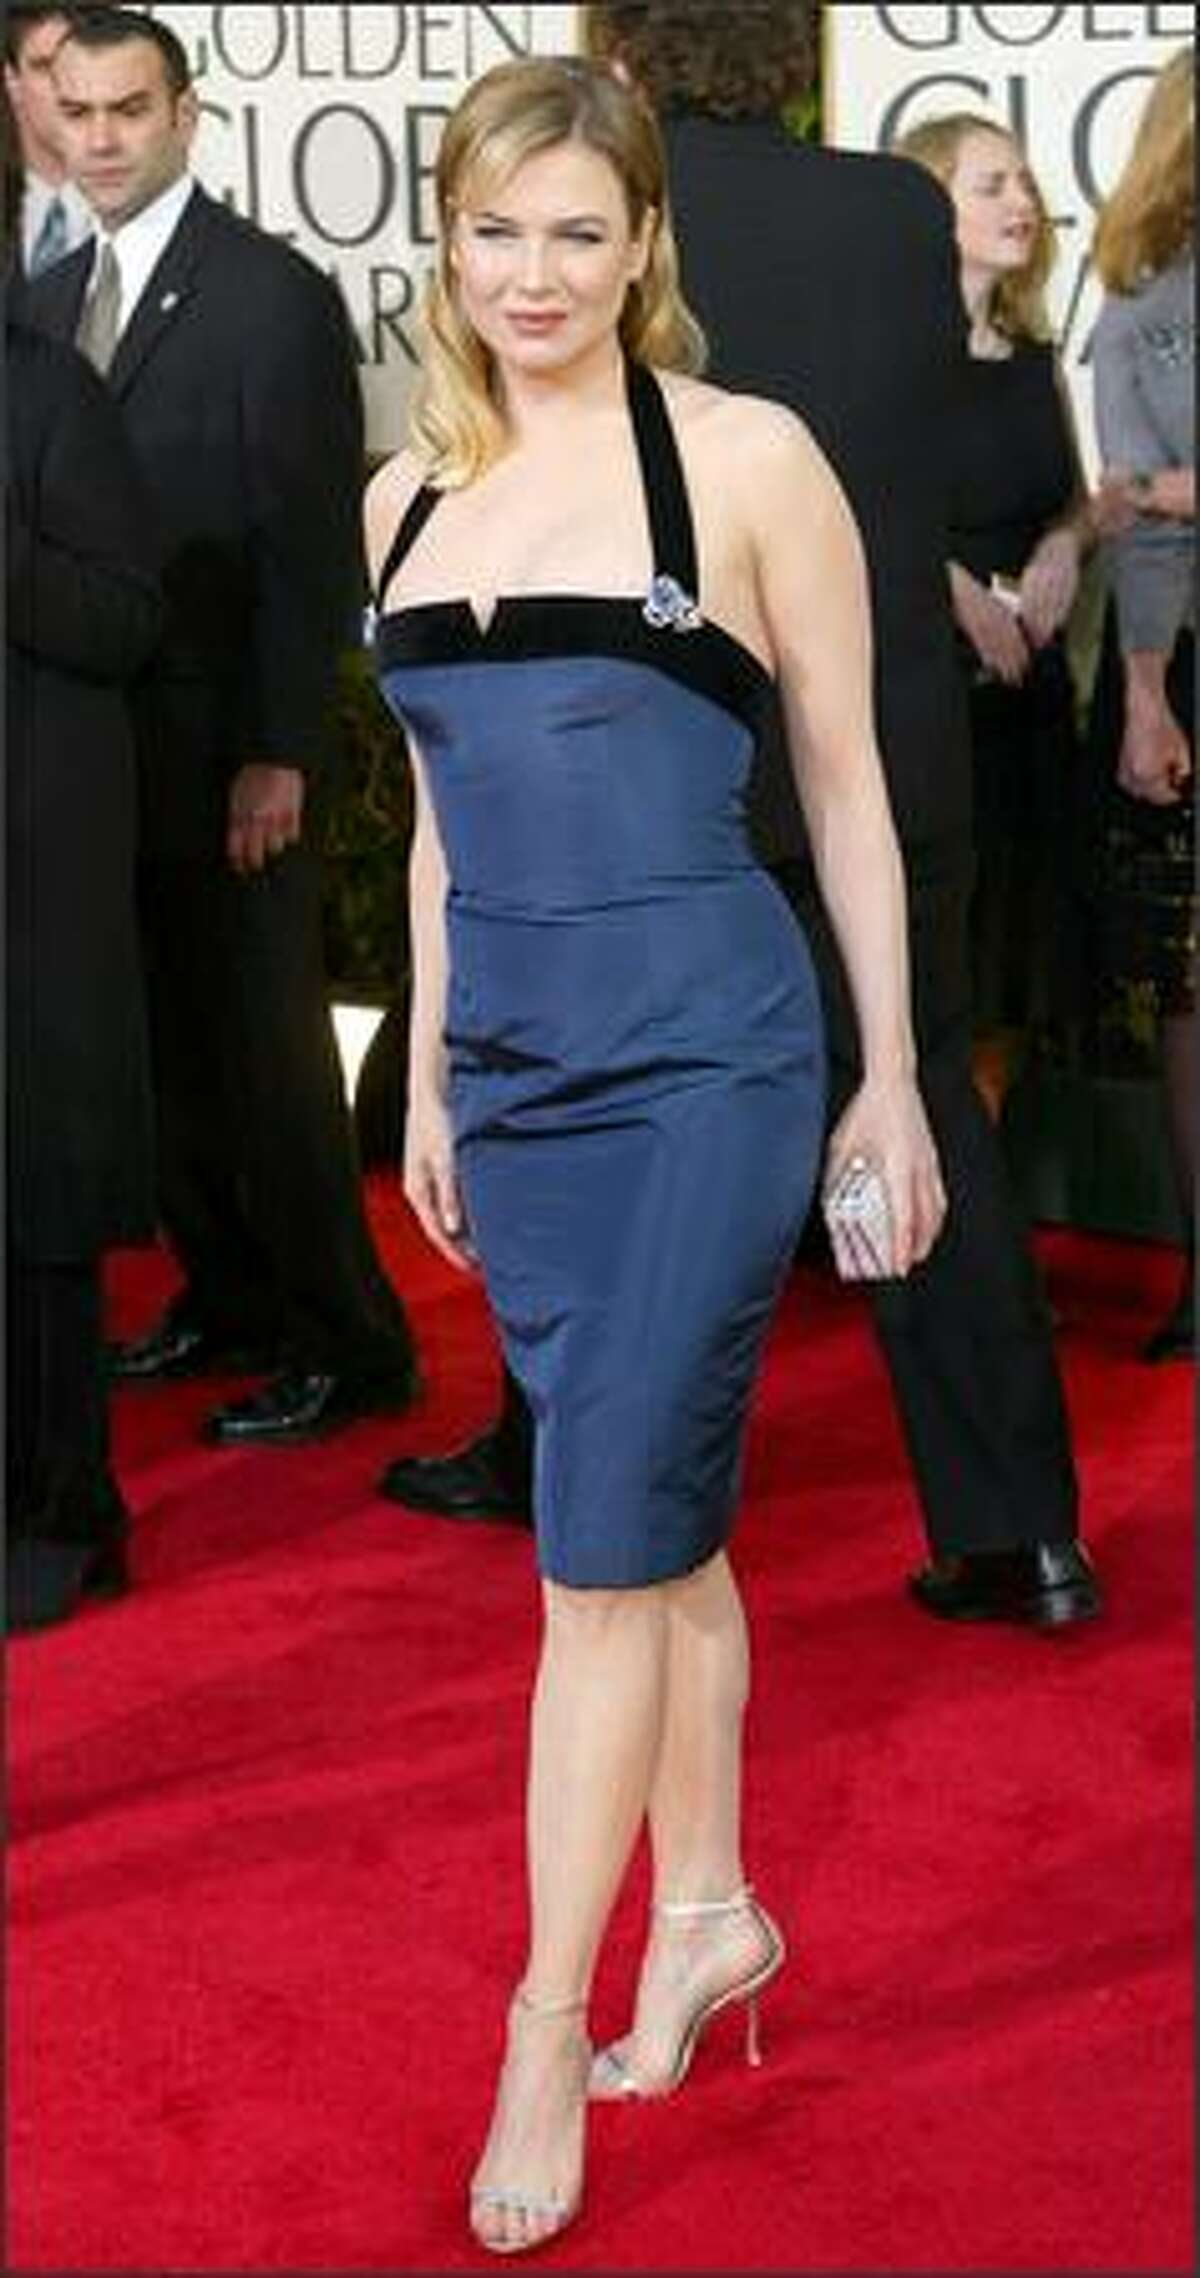 Renee Zellweger, nominated for best supporting actress for her work in